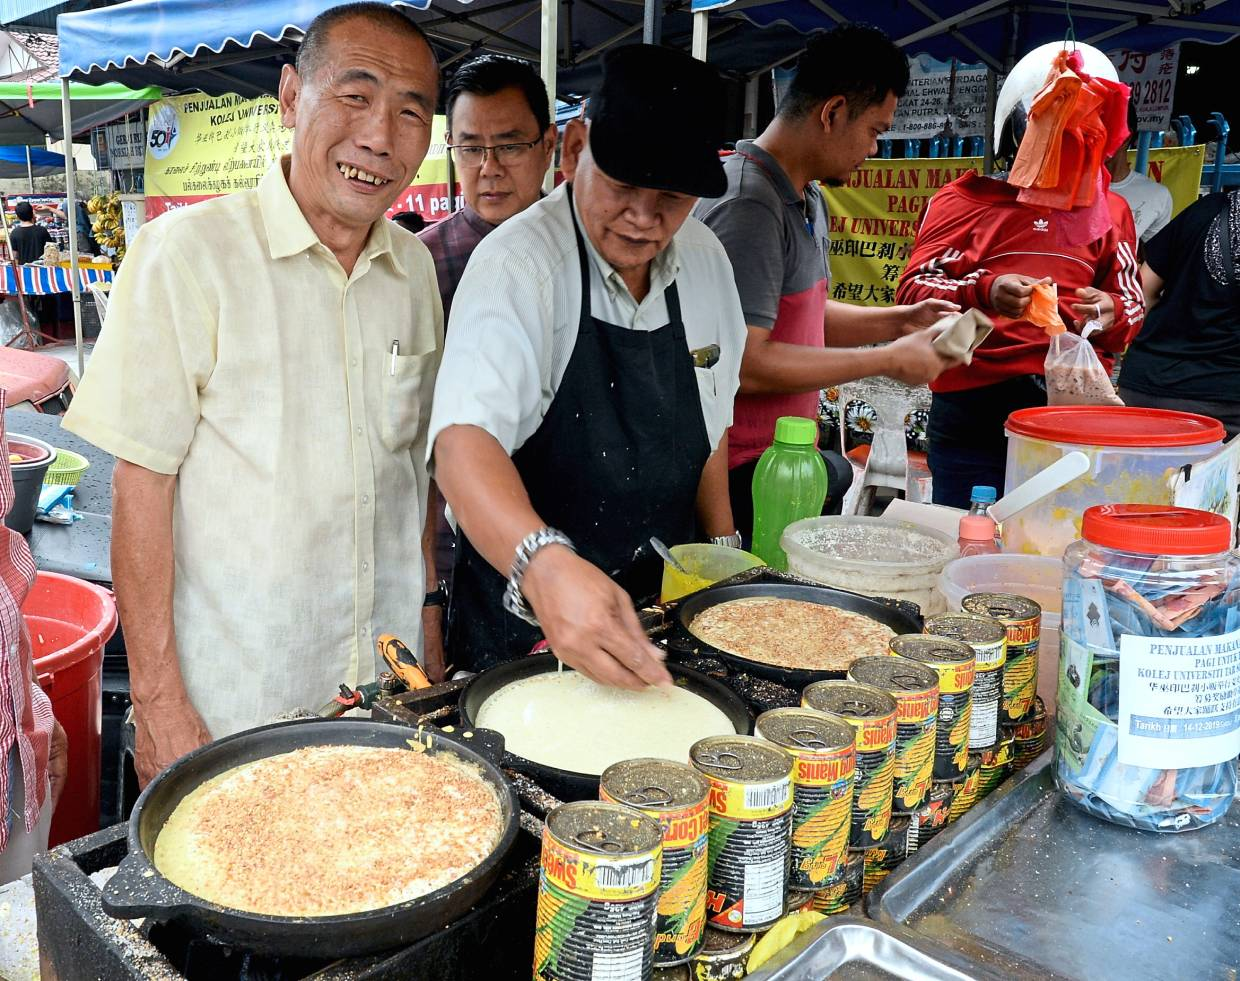 Market traders unite for common cause